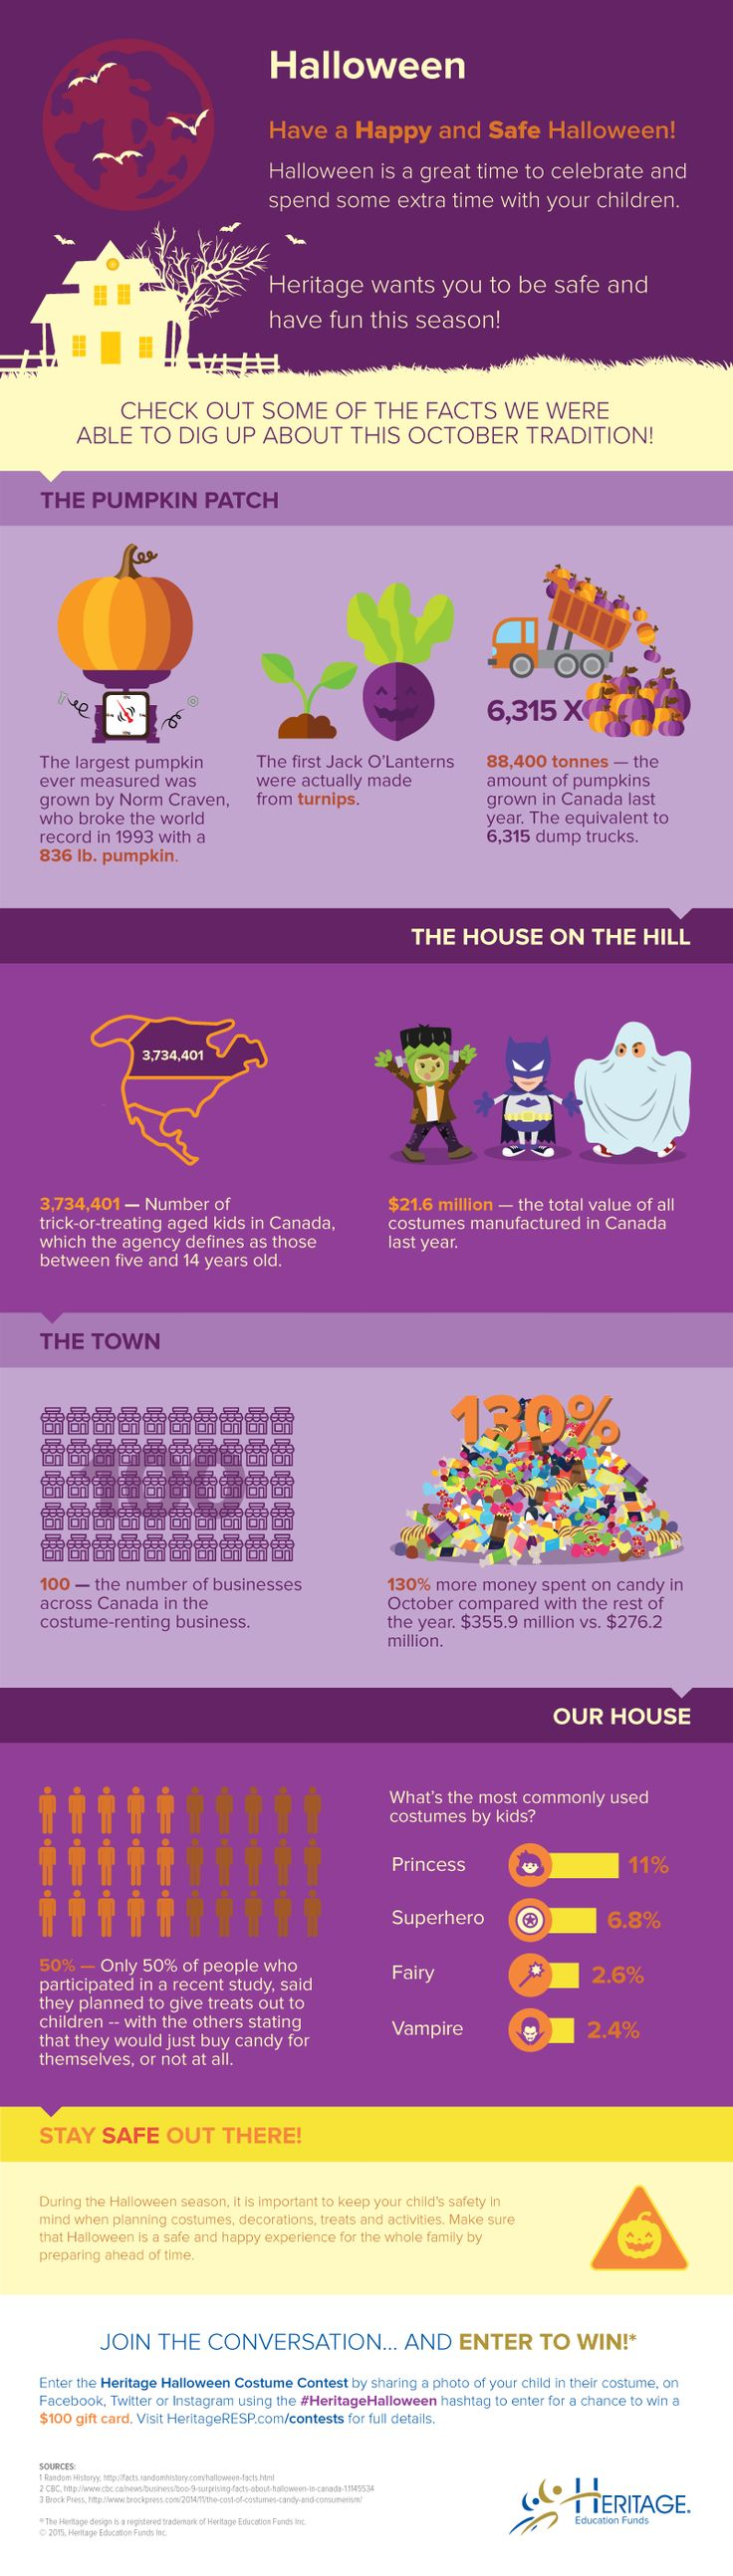 Halloween Fun Facts Infographic -- and Share a Photo to Win #HeritageHalloween Contest!